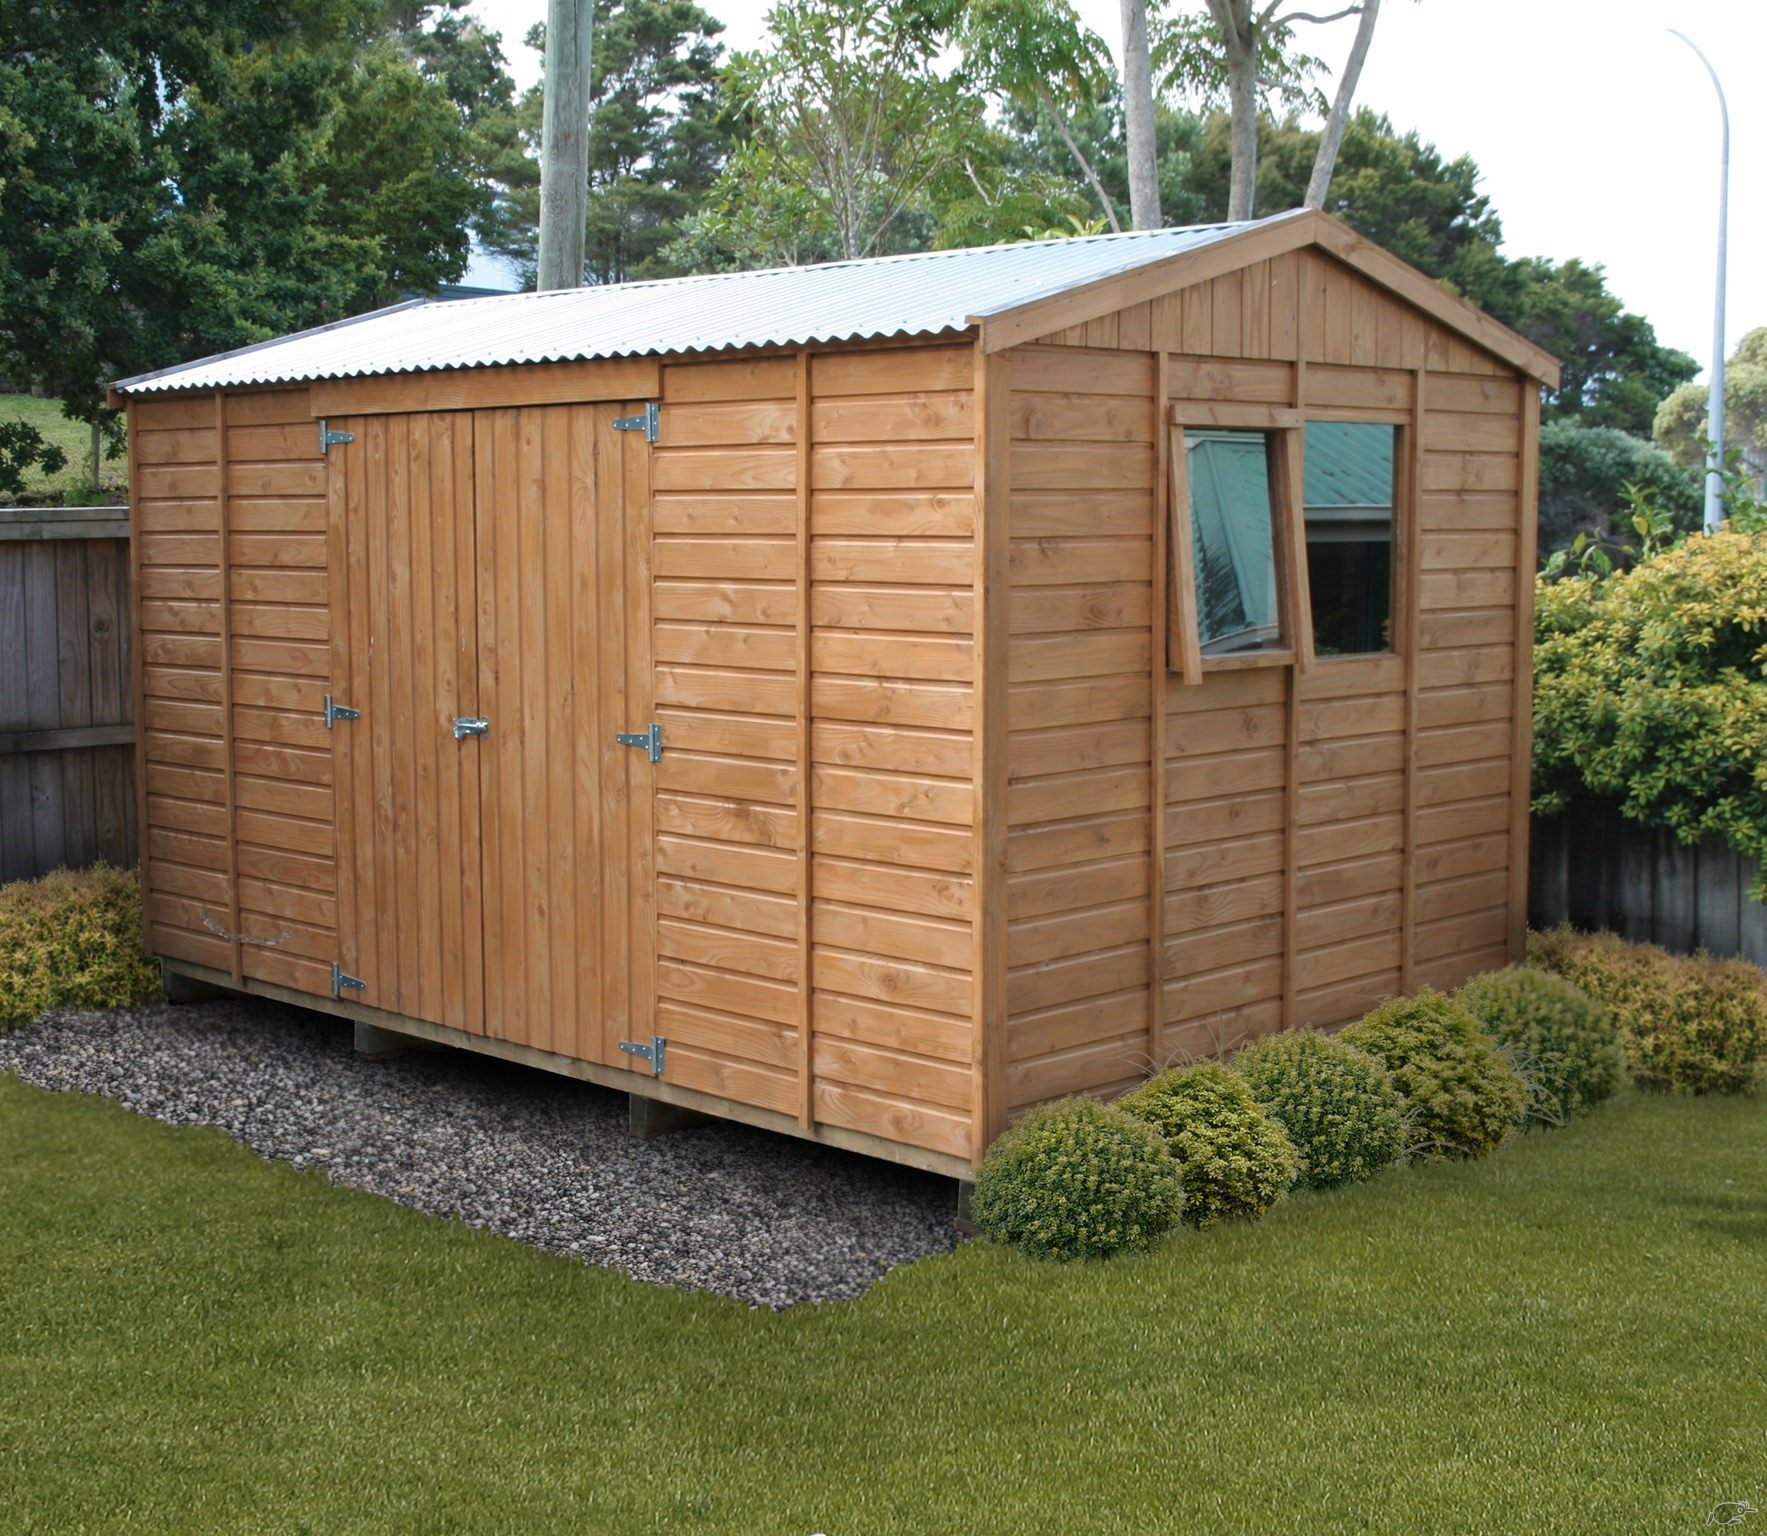 shed homeberry garden product workshop apex doors window groove sheds wooden double and tongue x thickness wall